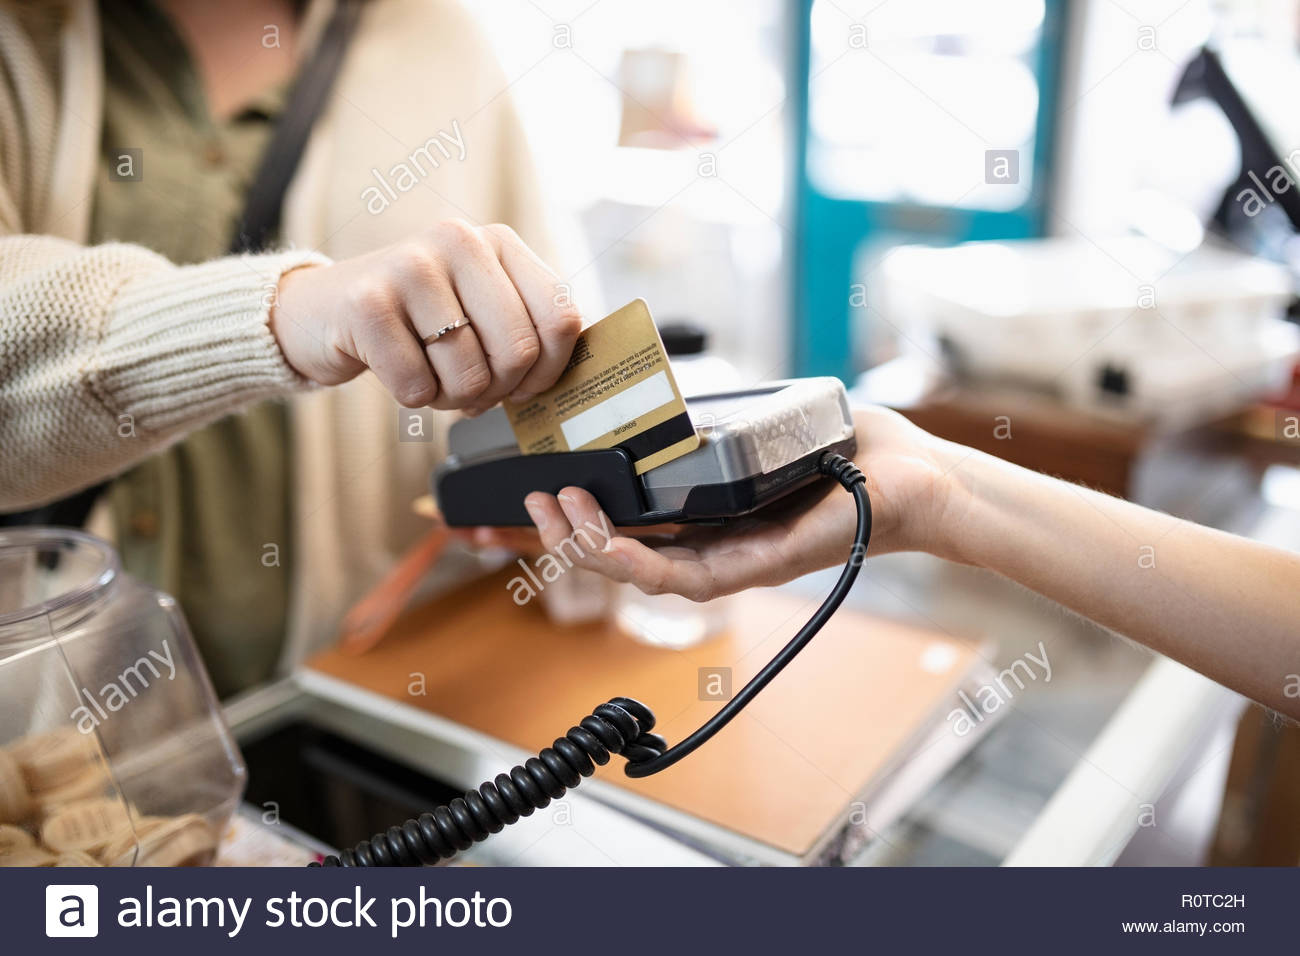 Close up female shopper paying, using credit card reader in shop - Stock Image